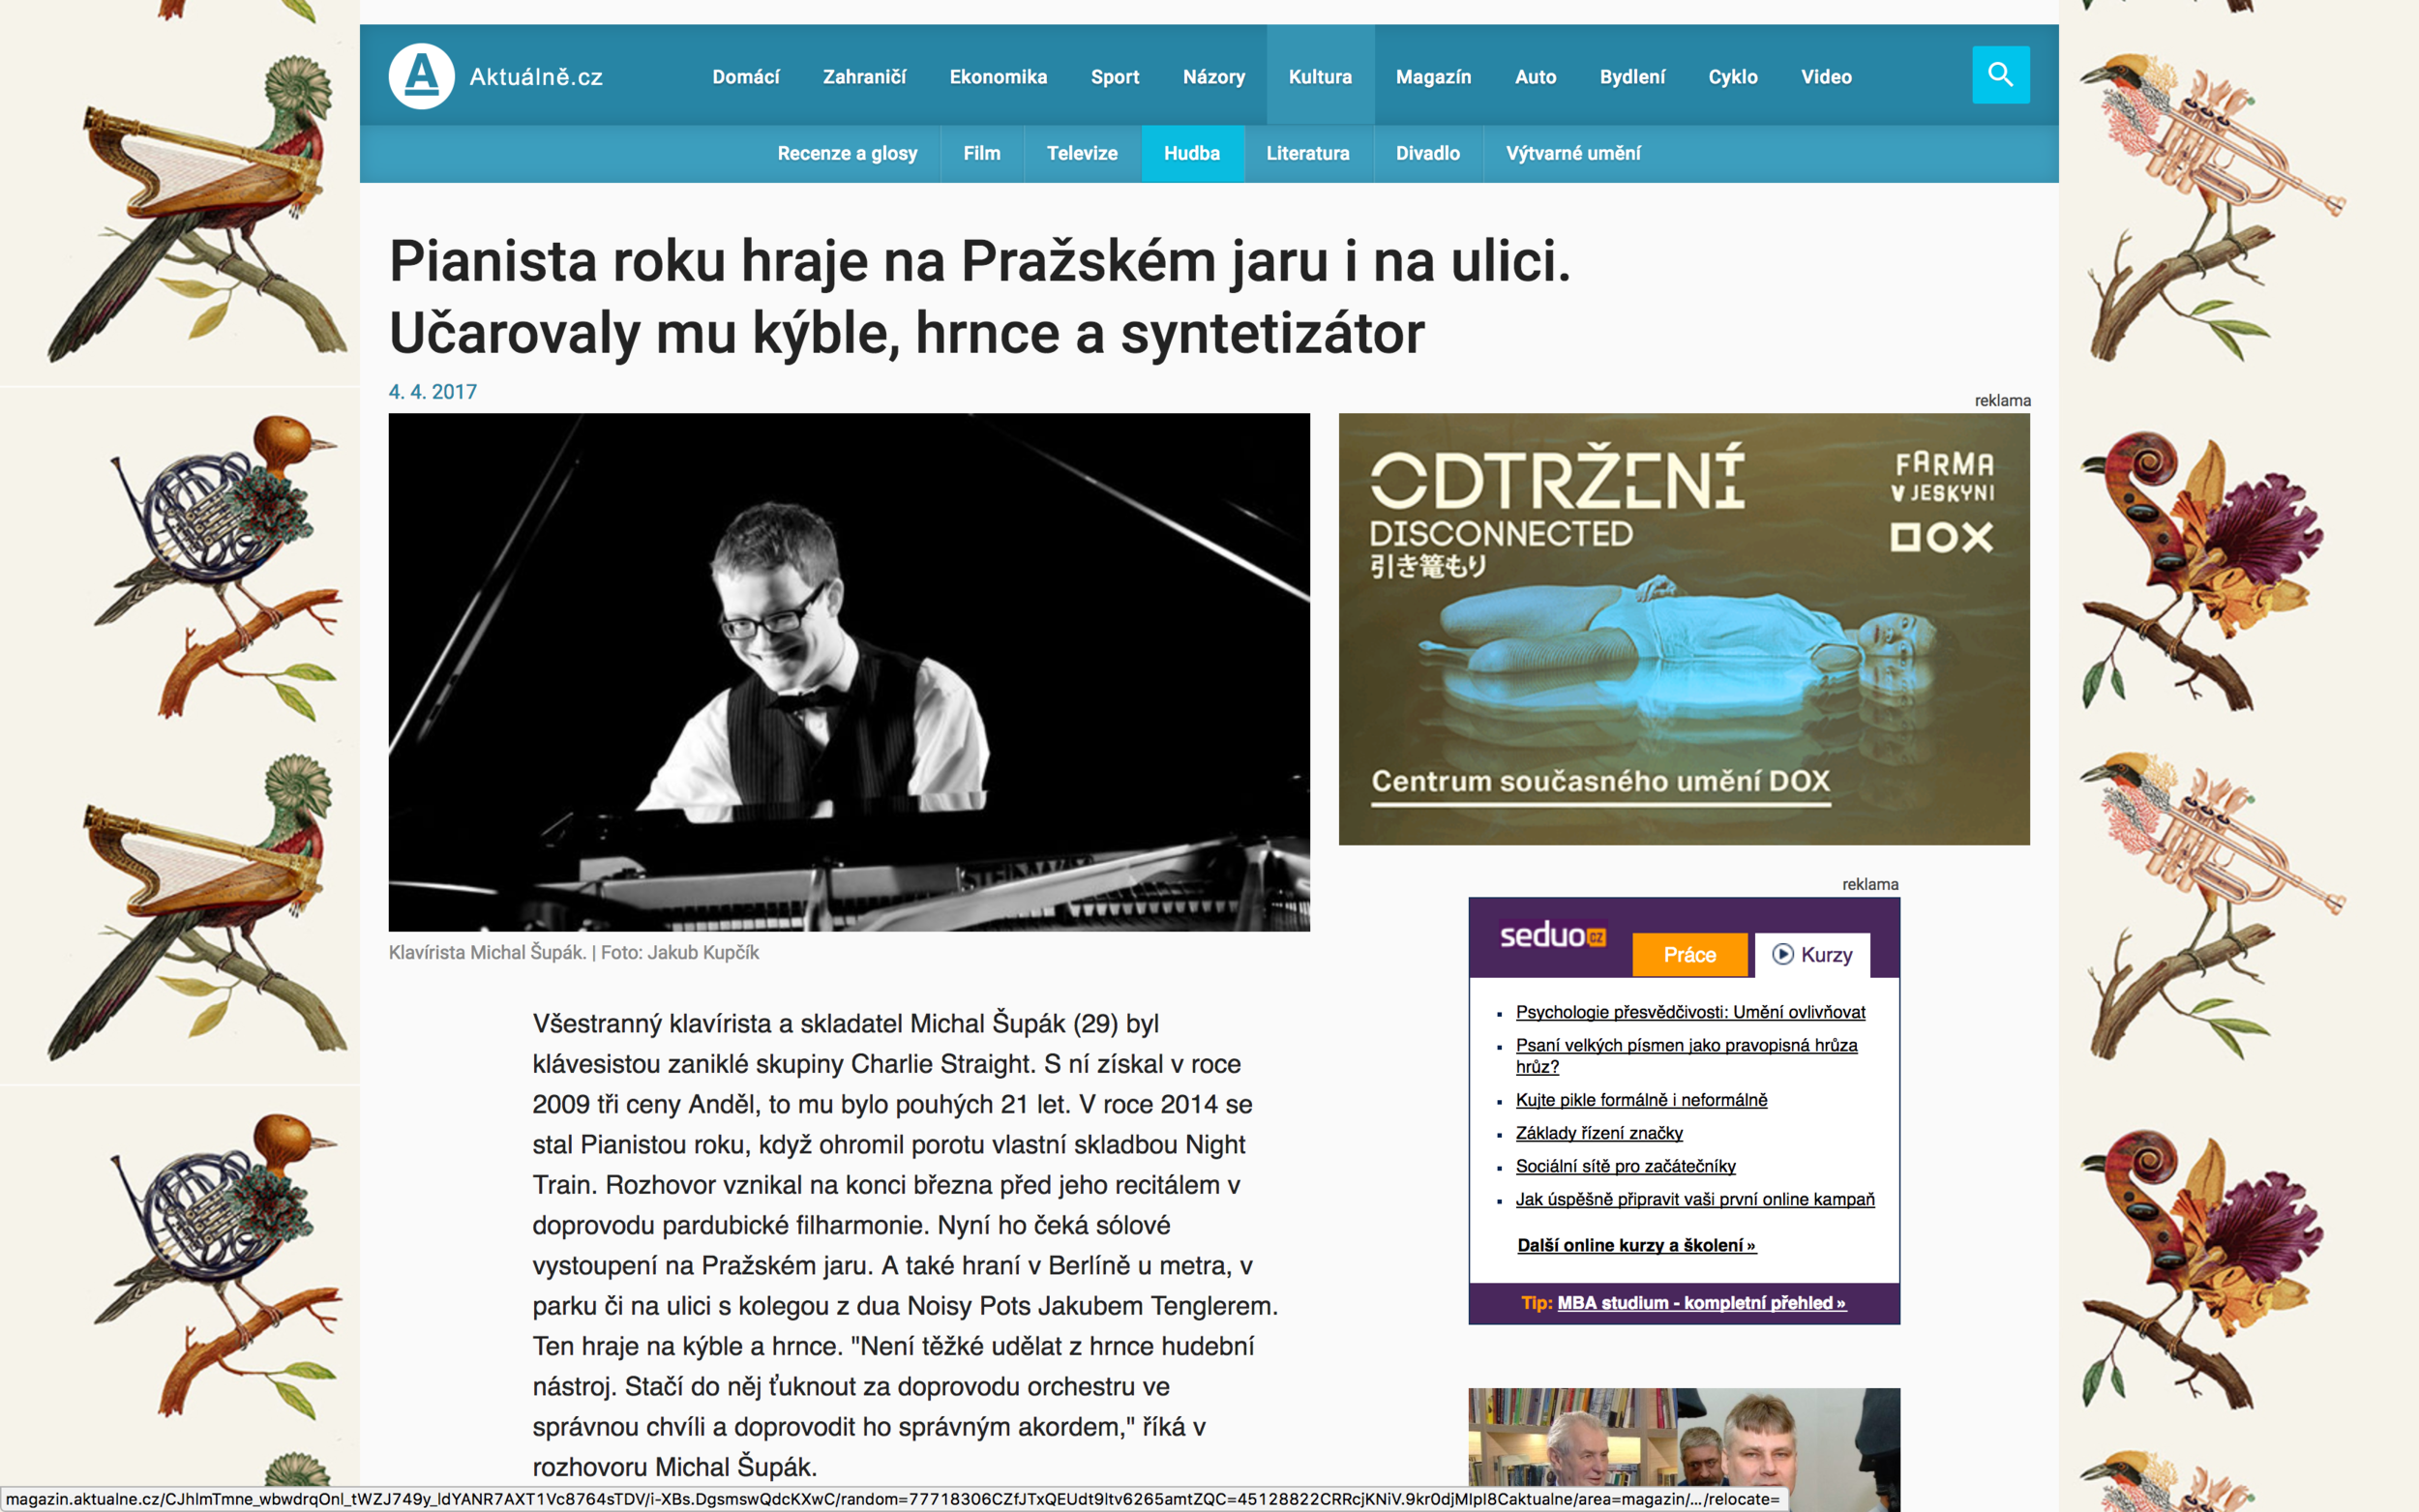 aktualne.cz   Interview about concert with Czech Chamber Philharmonic Orchestra Pardubice, Noisy Pots, Charlie Straight, future plans and more